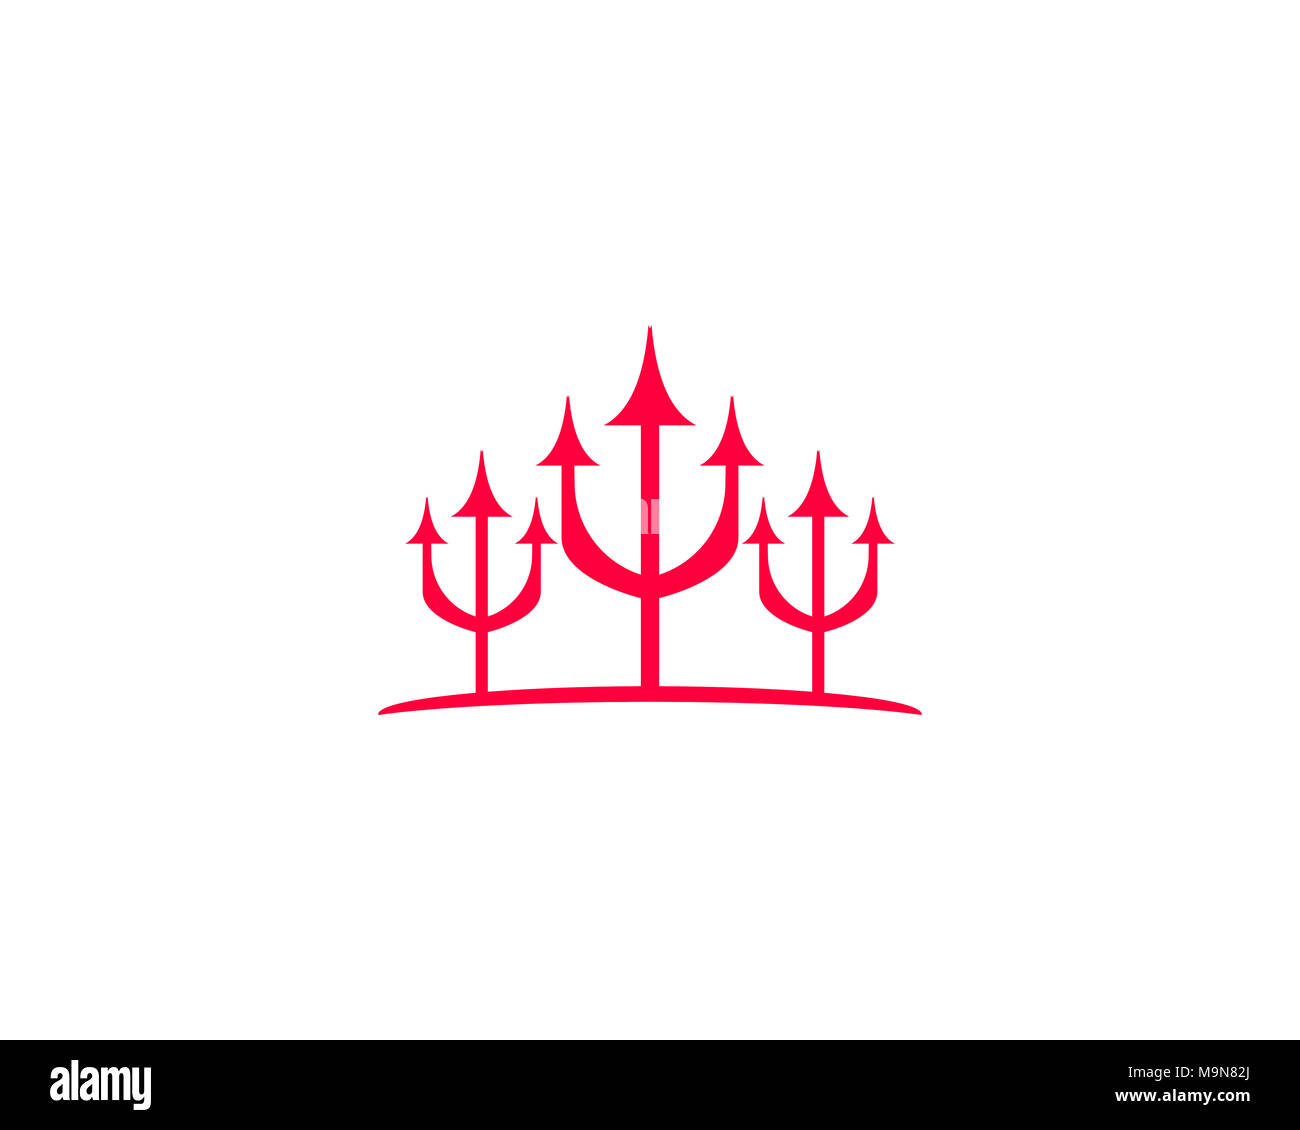 Weapon Pitchfork Stock Photos Weapon Pitchfork Stock Images Alamy